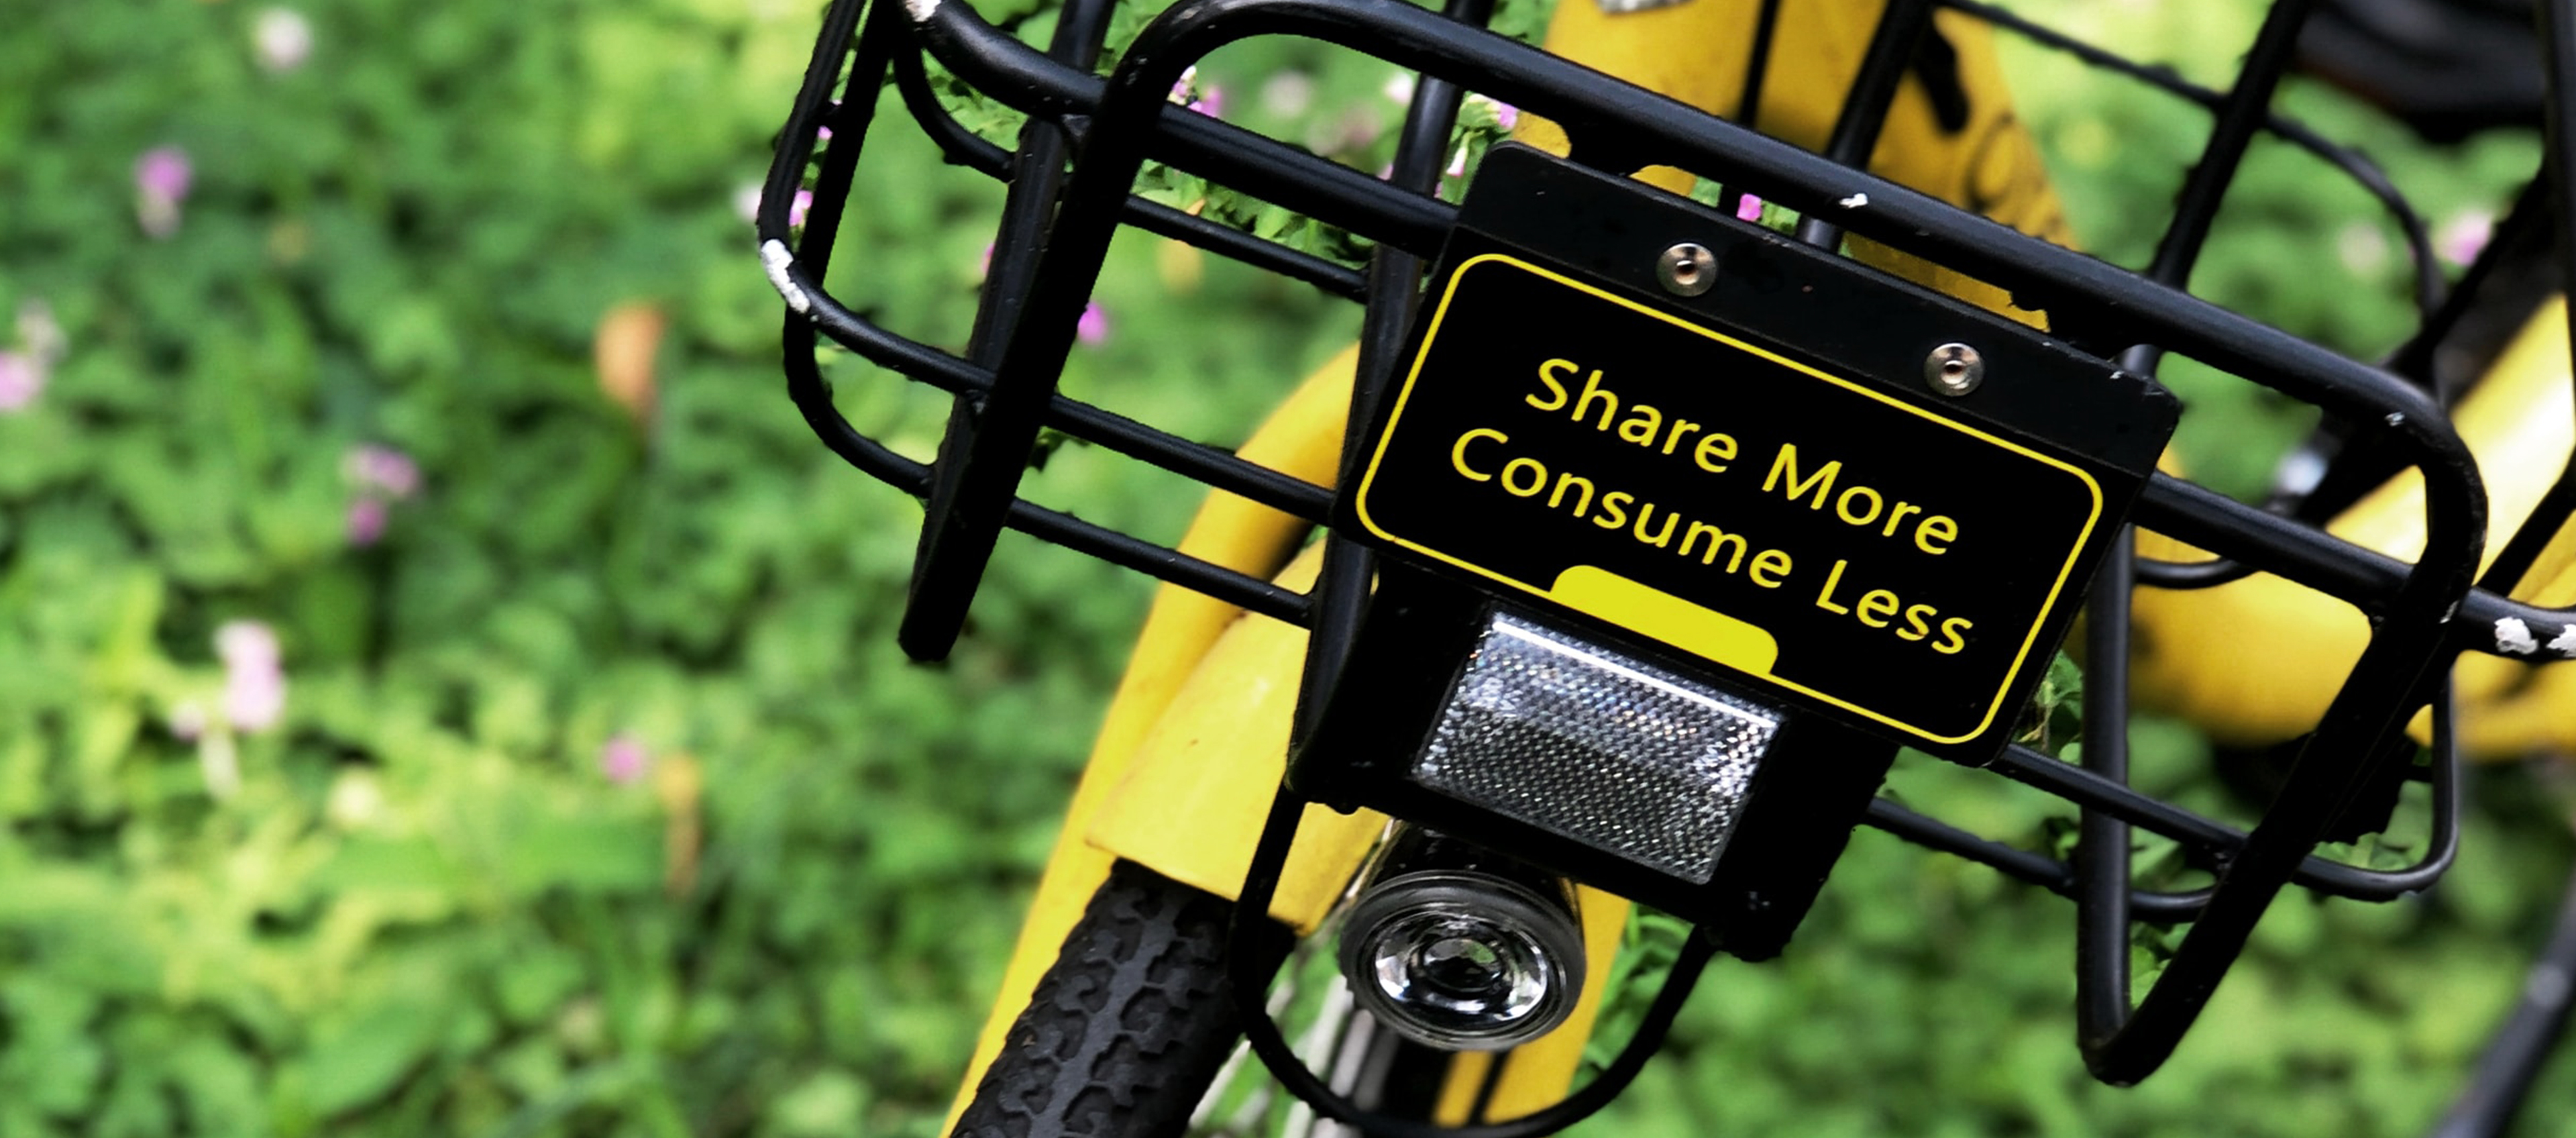 Never mind the bike-sharing fiascos – China's sharing economy is still steaming ahead